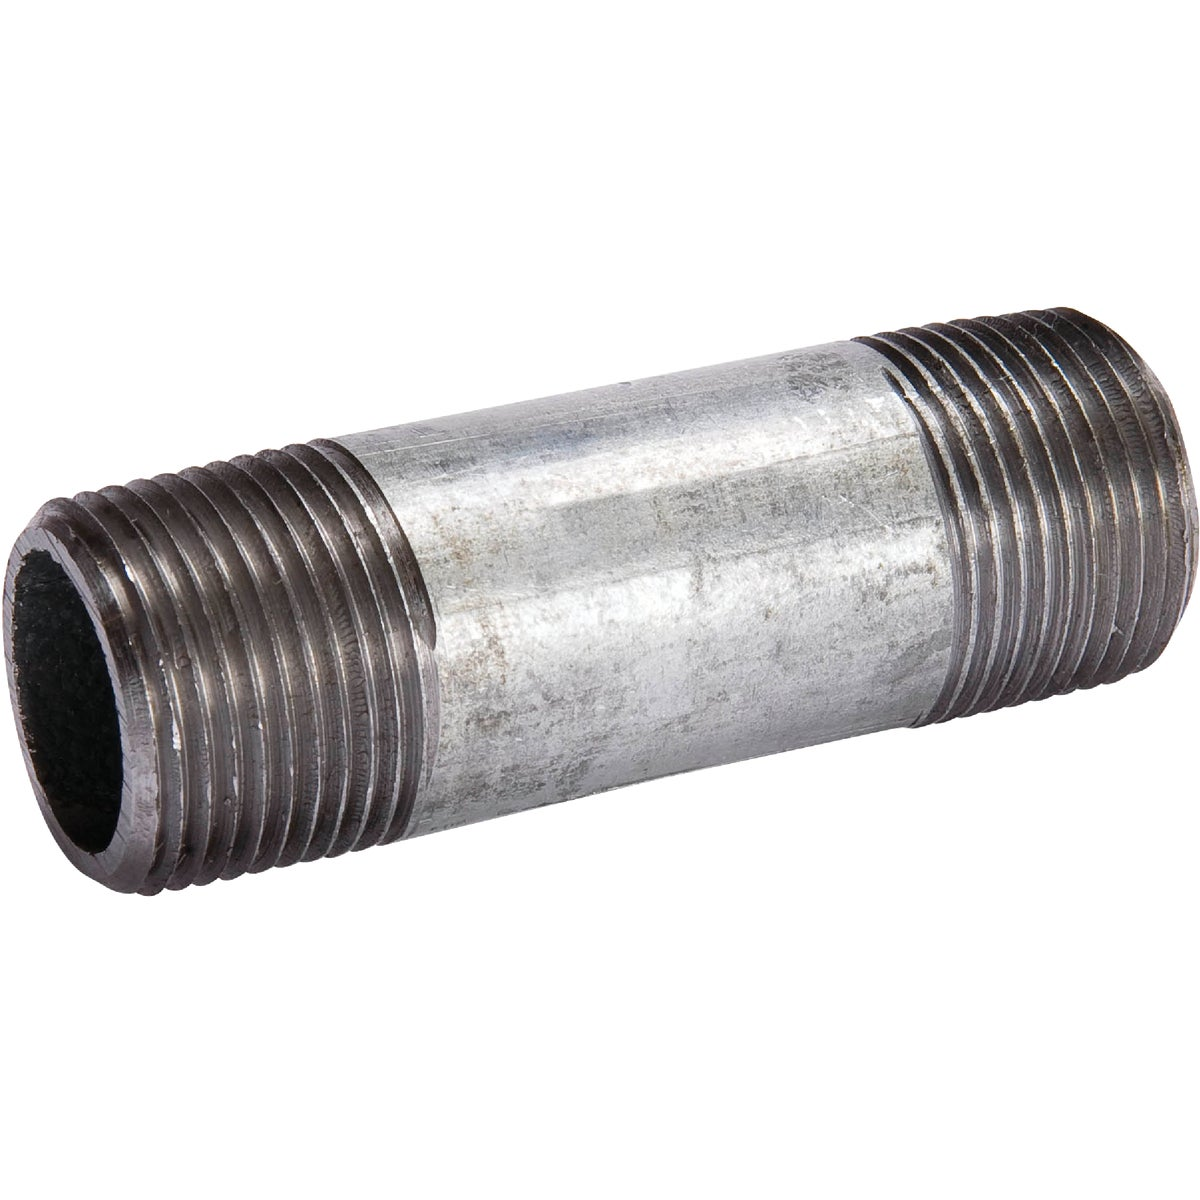 1/2X6 GALV NIPPLE - 10410 by Southland Pipe Nippl